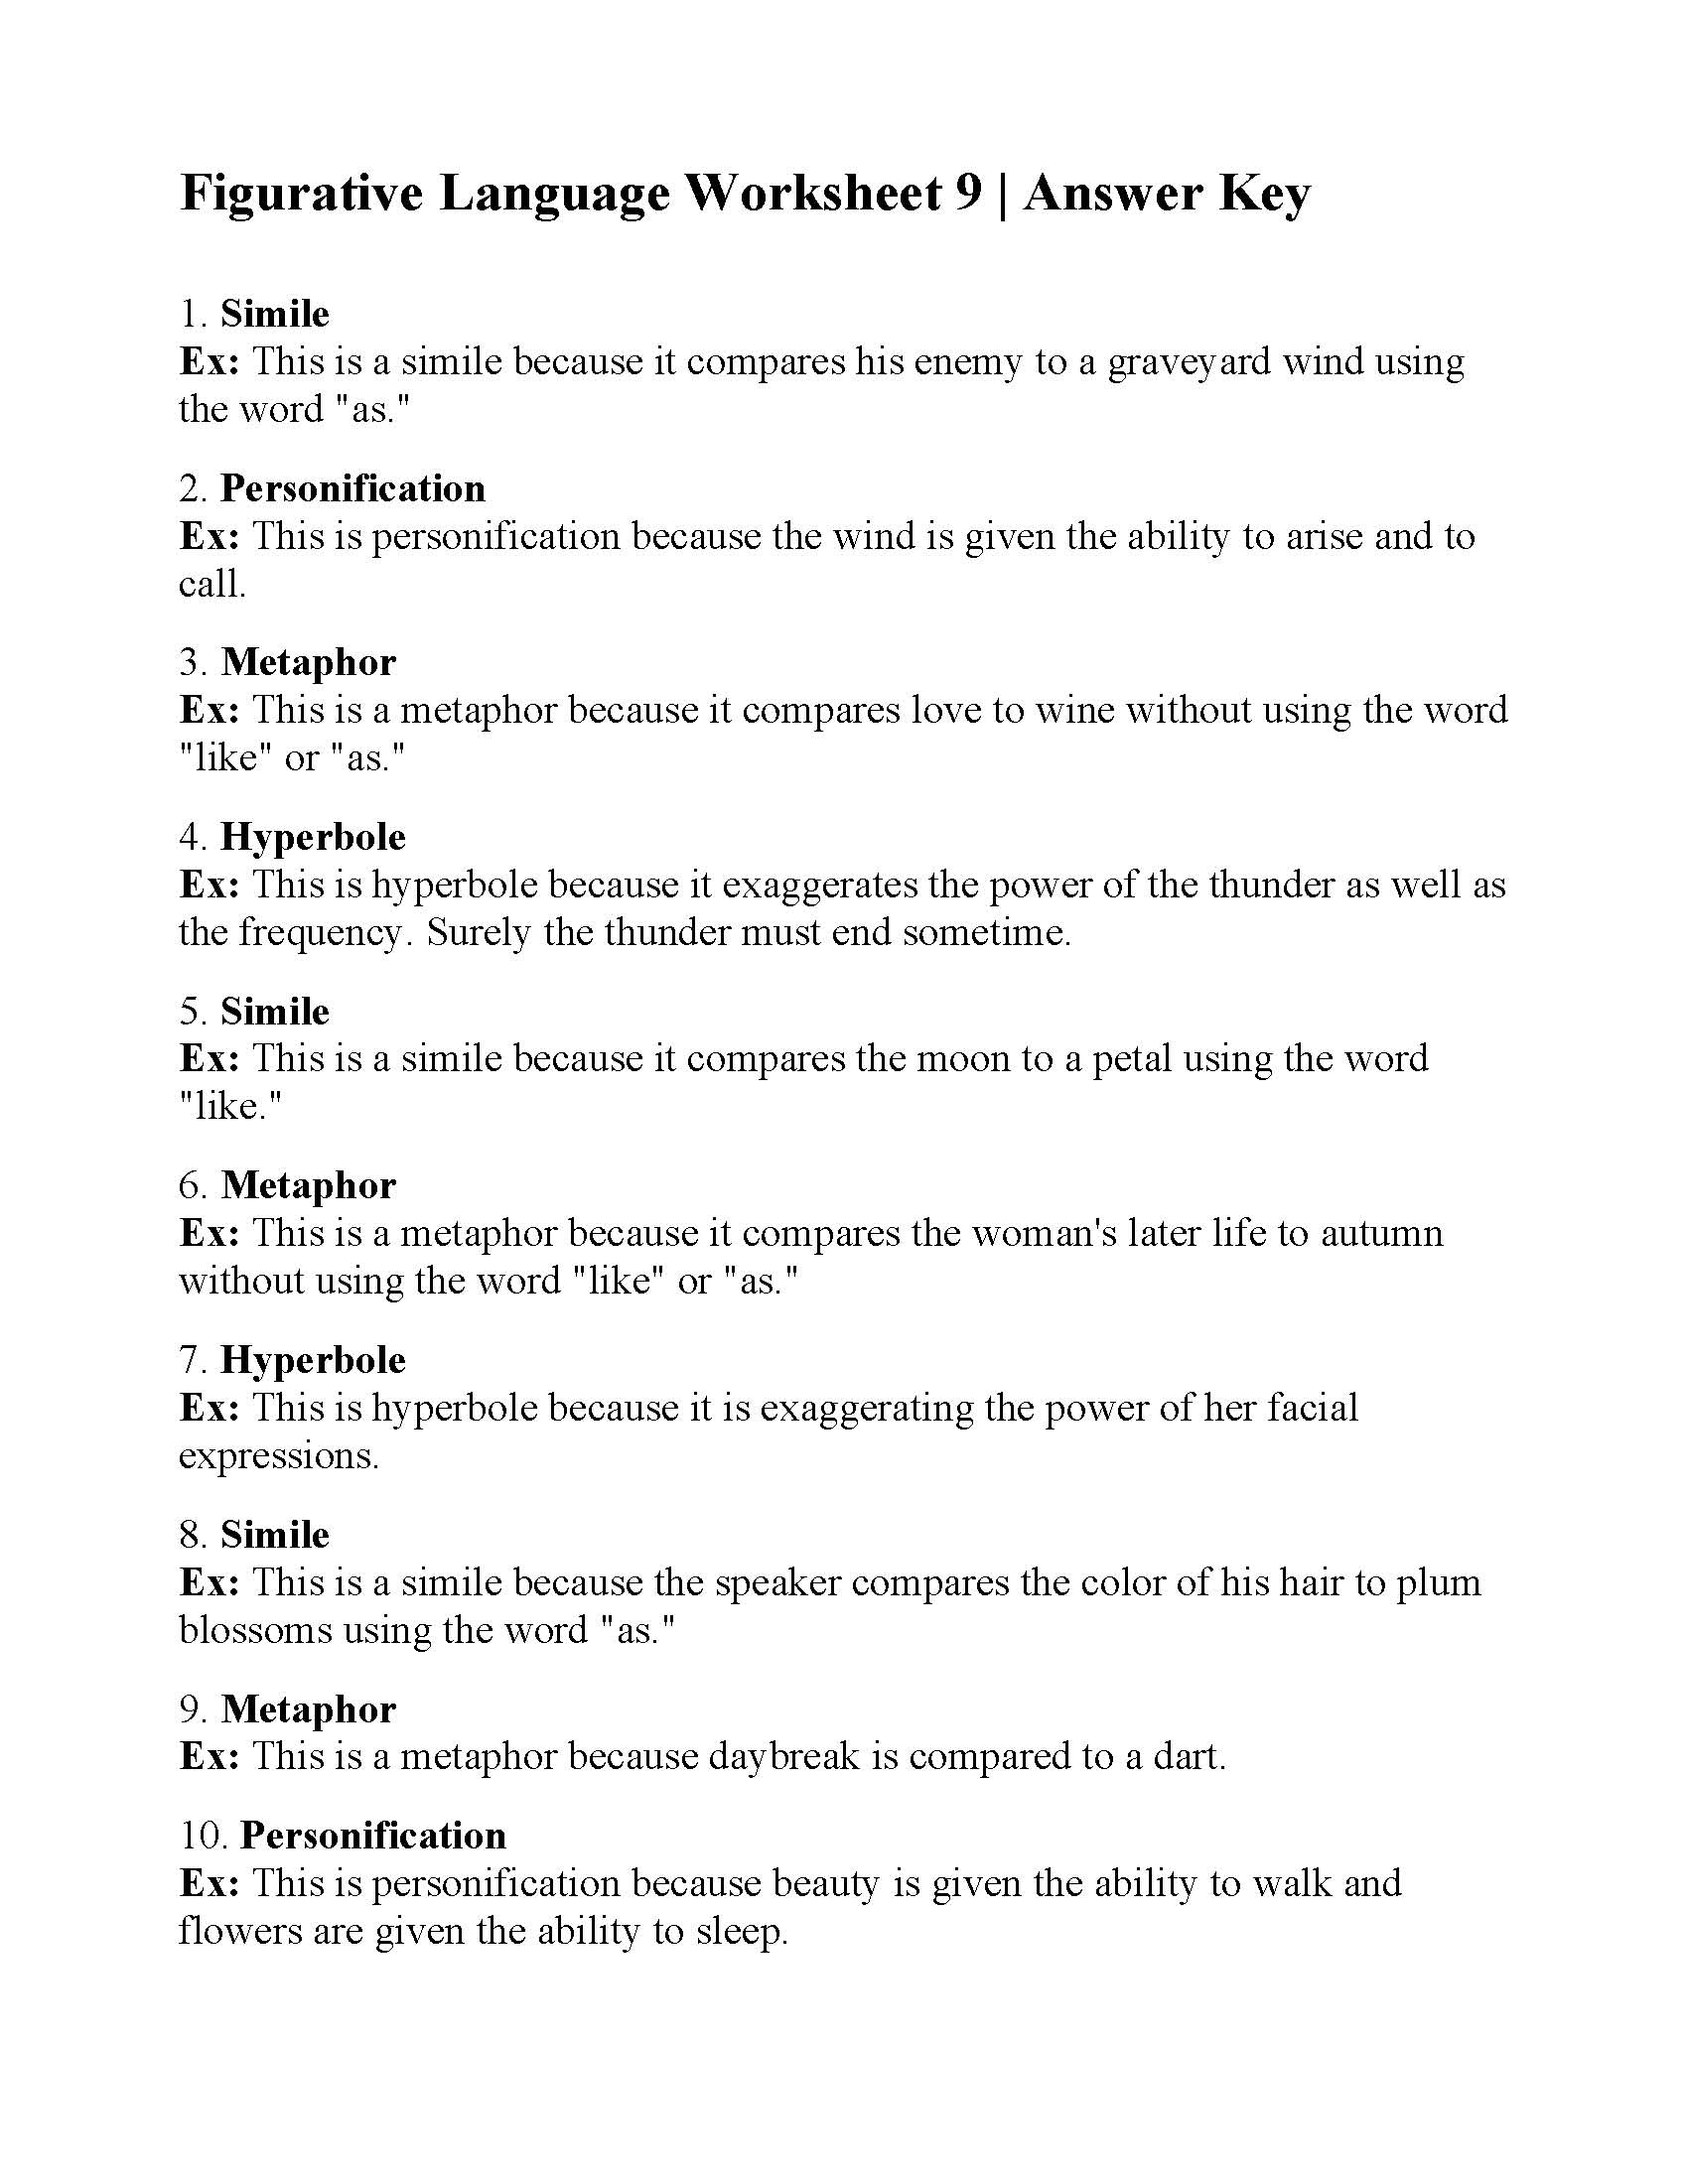 Figurative Language Worksheet 9